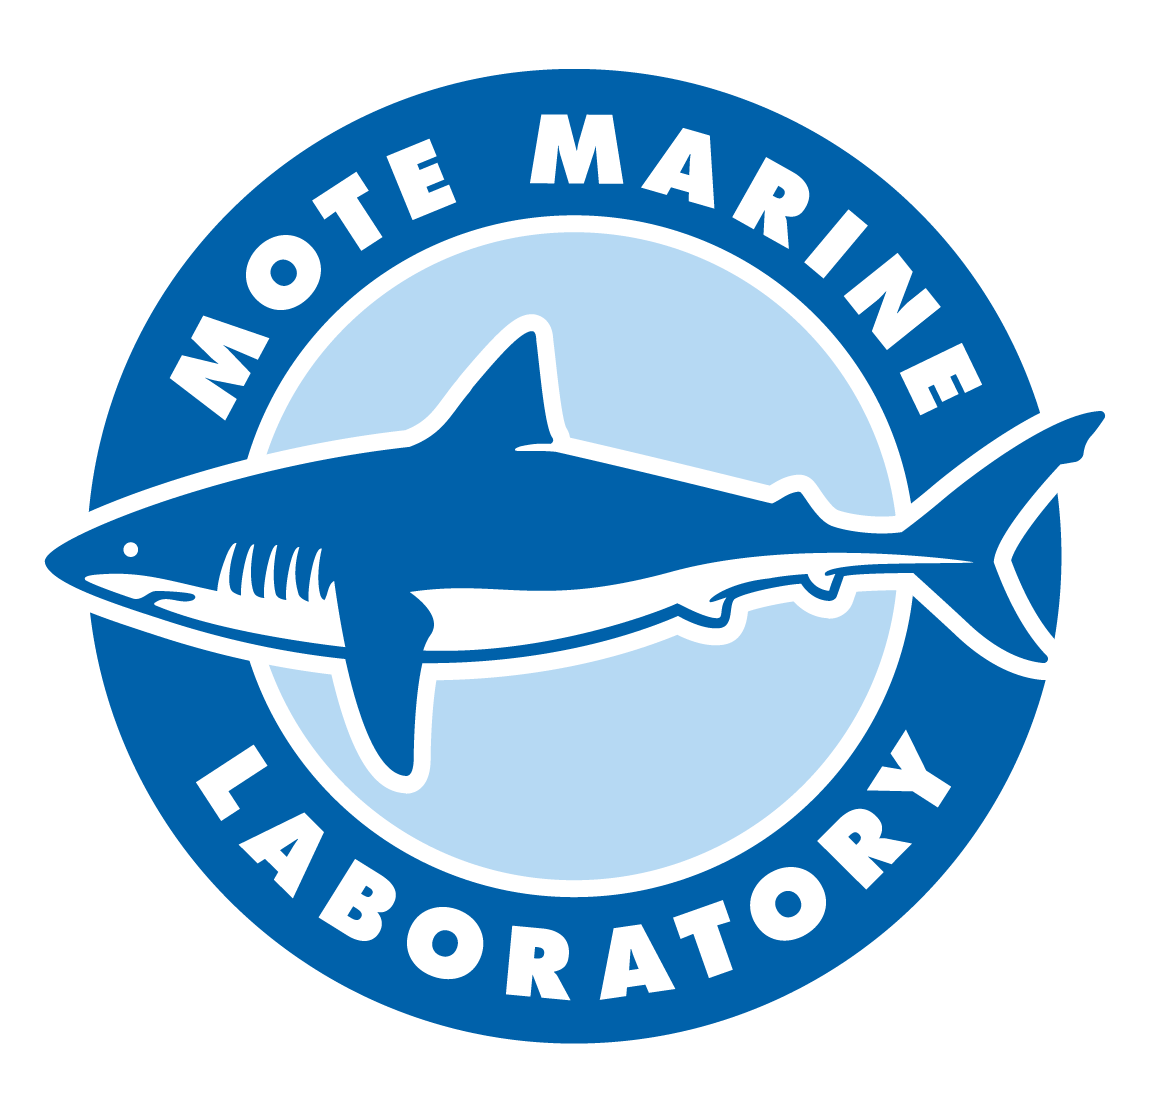 Fundraiser Car Wash for Mote Marine Laboratory Hurricane Irma Disaster Relief Funds